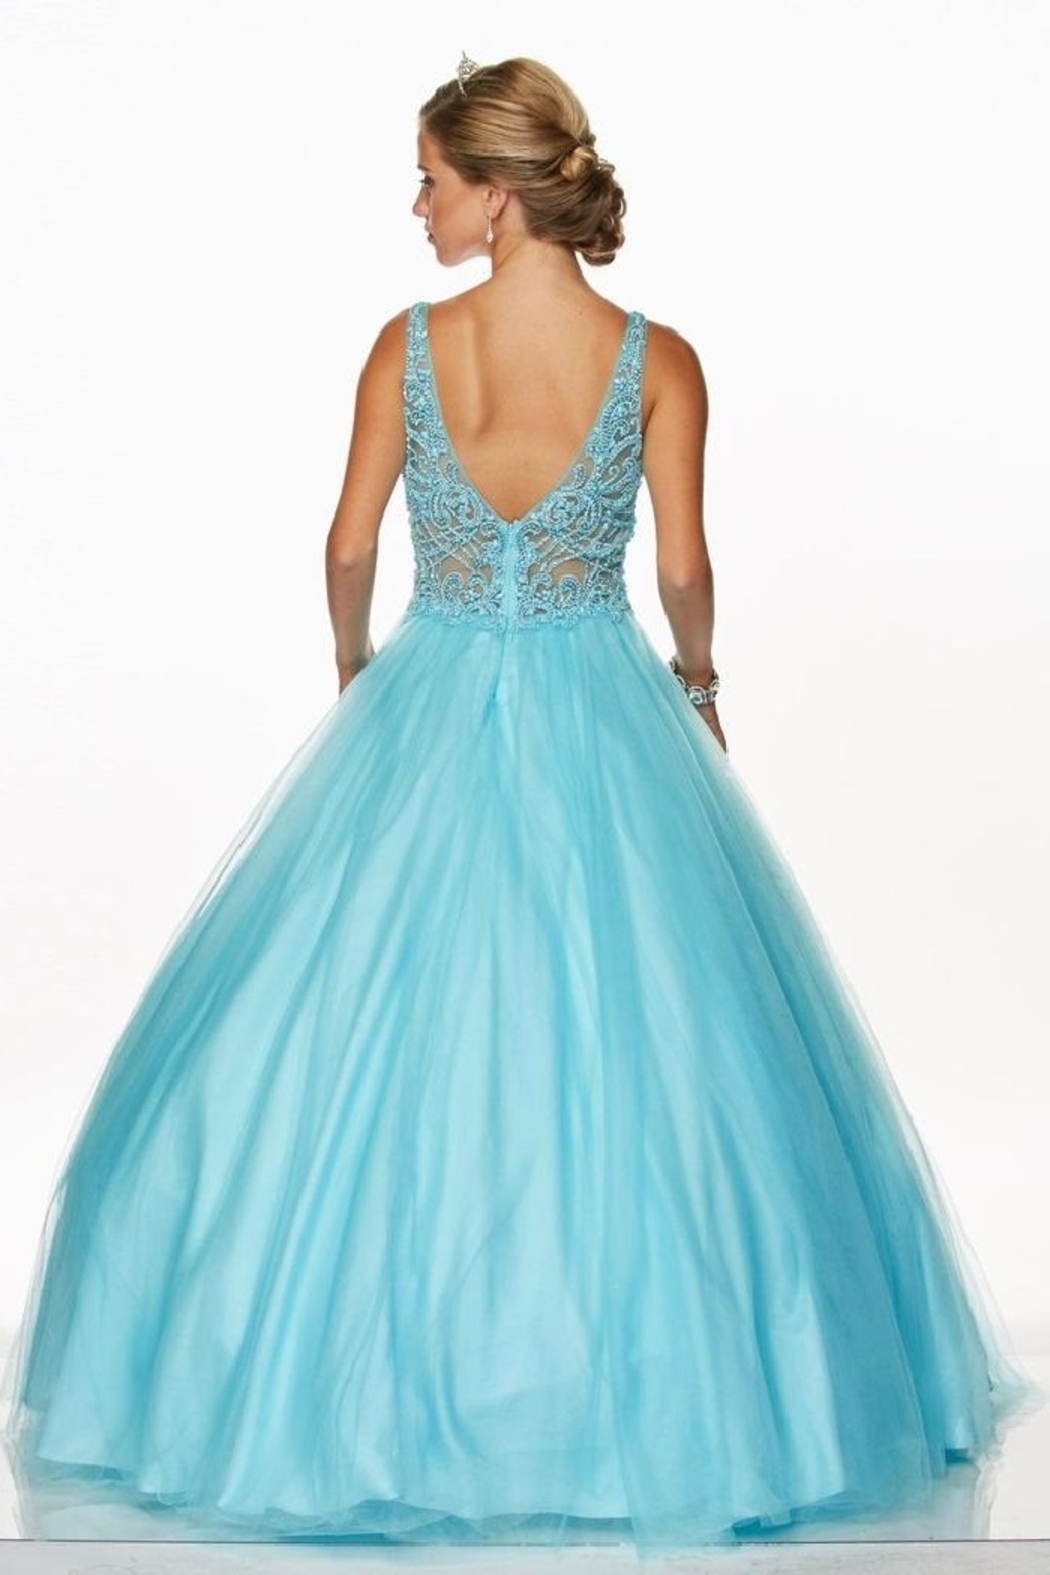 Juliet Turquoise Beaded Formal Ball Gown - Front Full Image